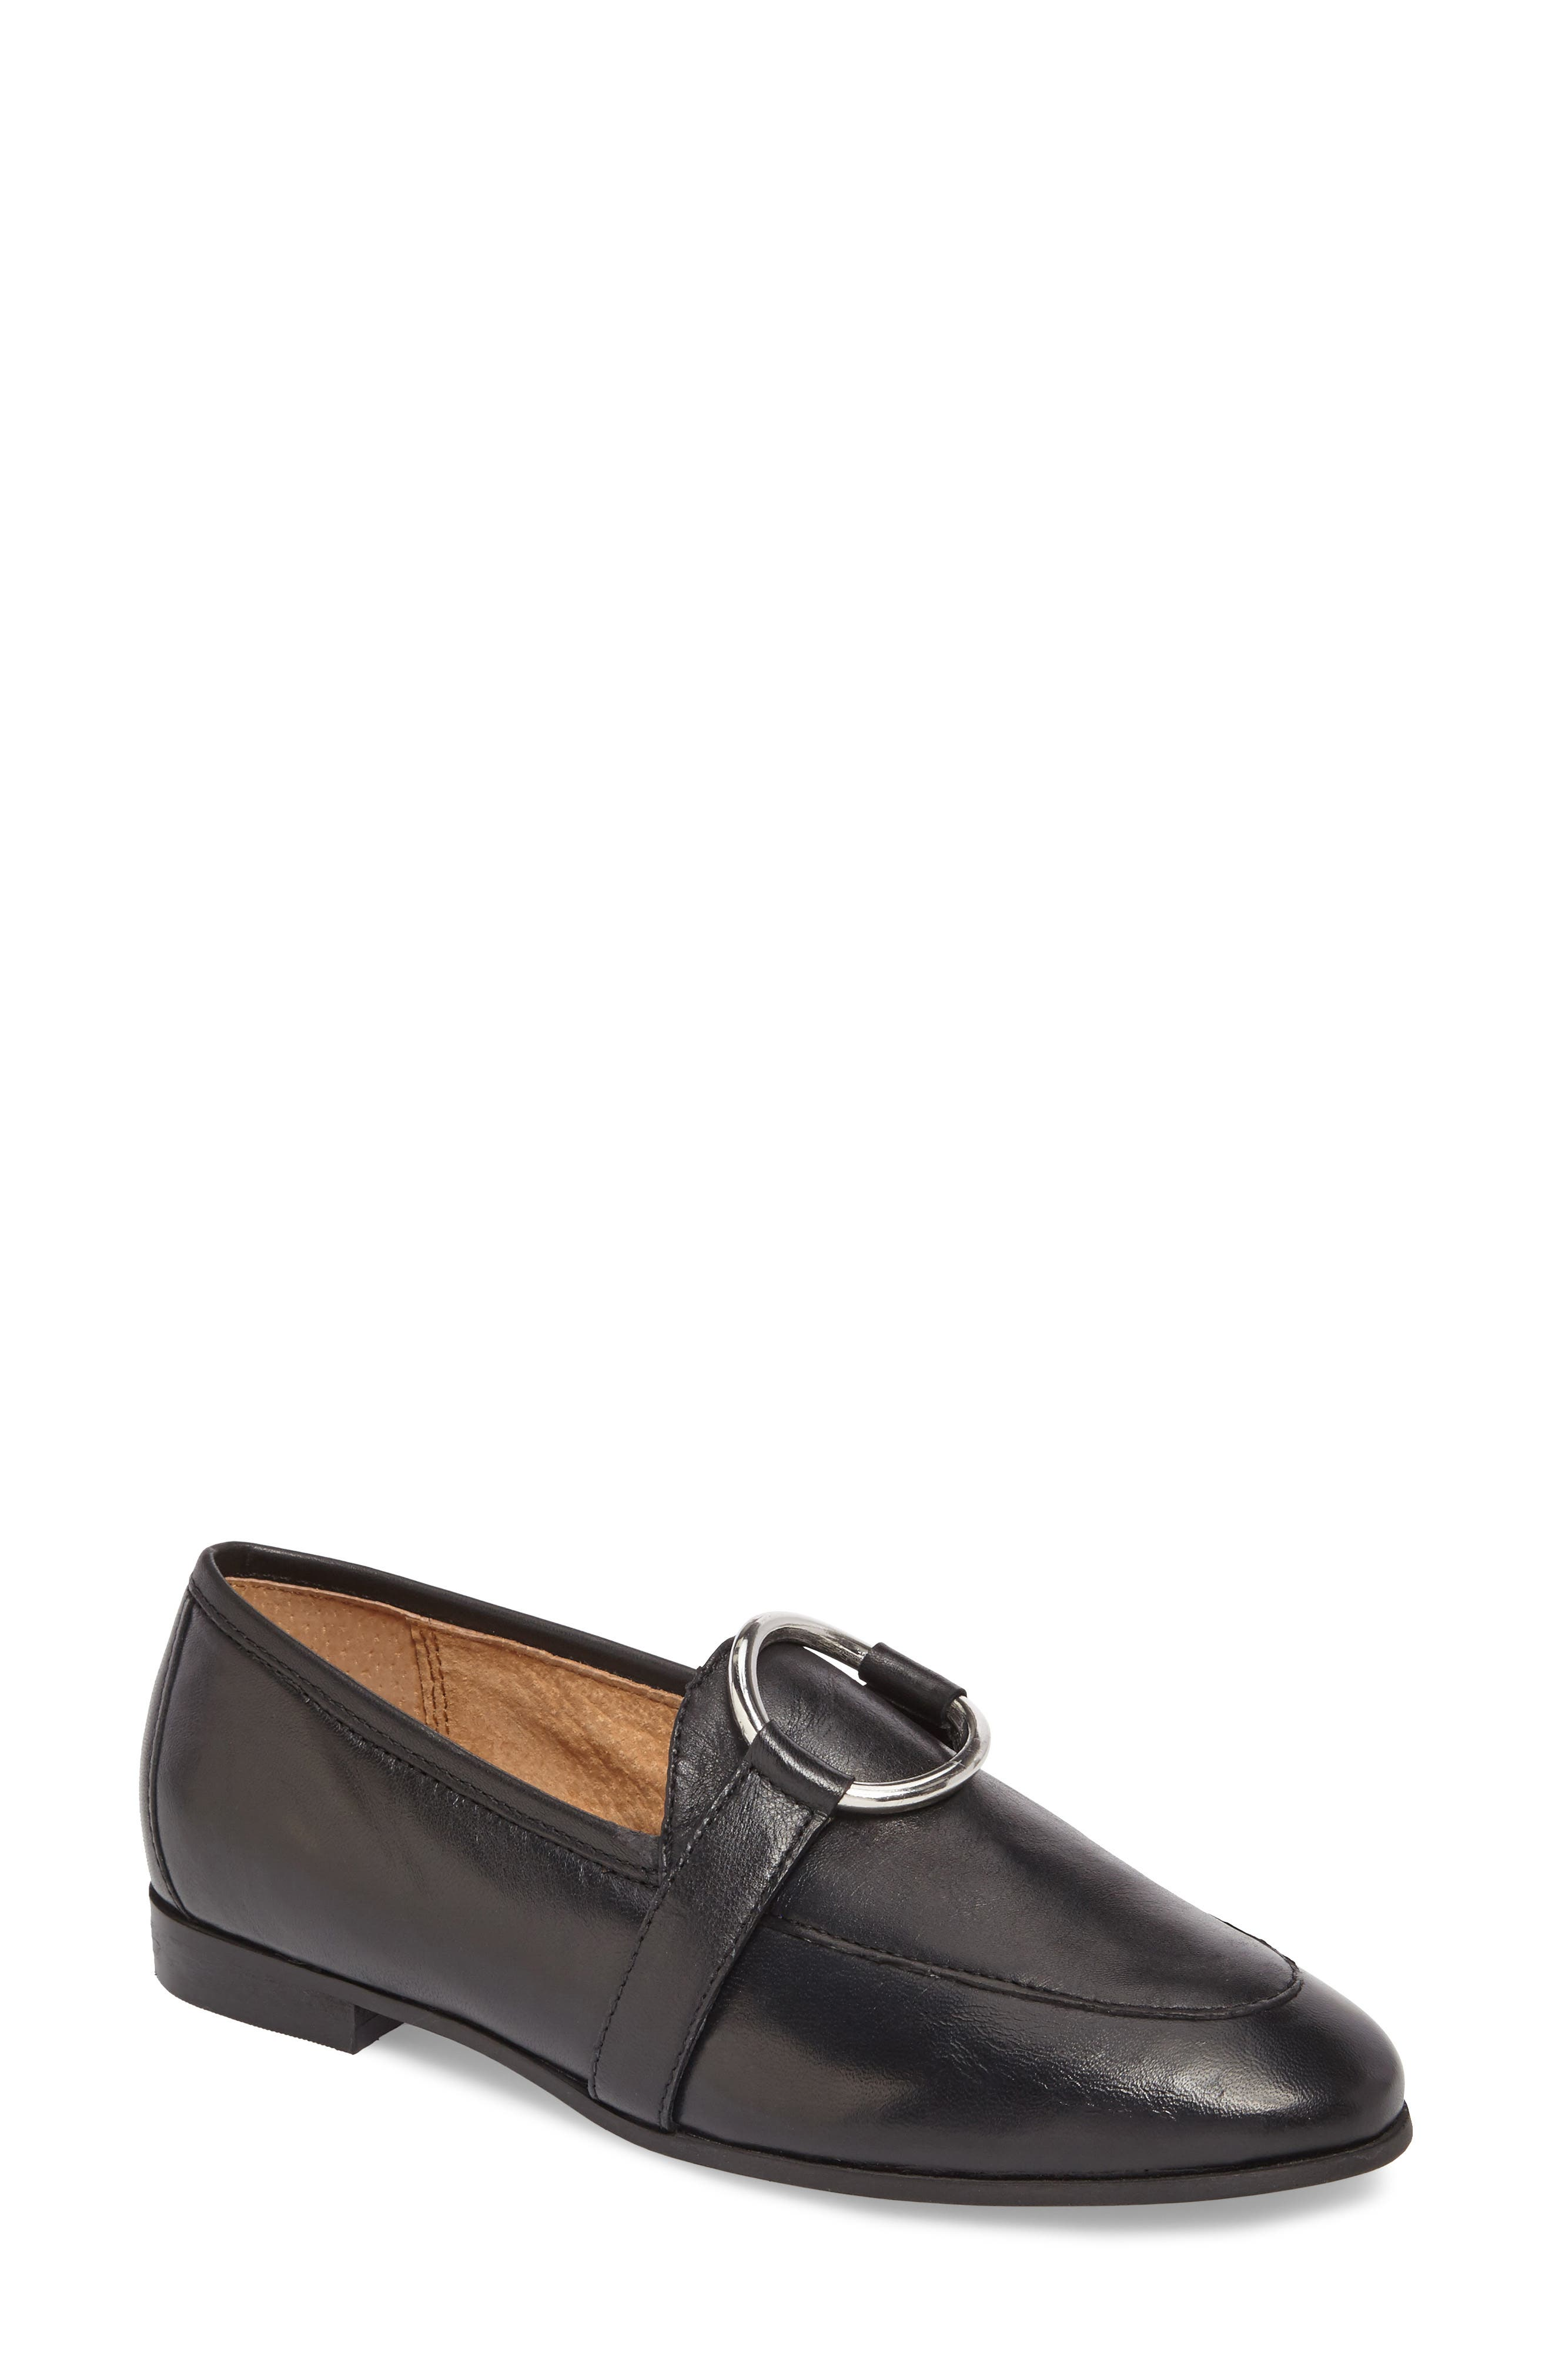 Kreme Ring Loafer,                             Main thumbnail 1, color,                             Black